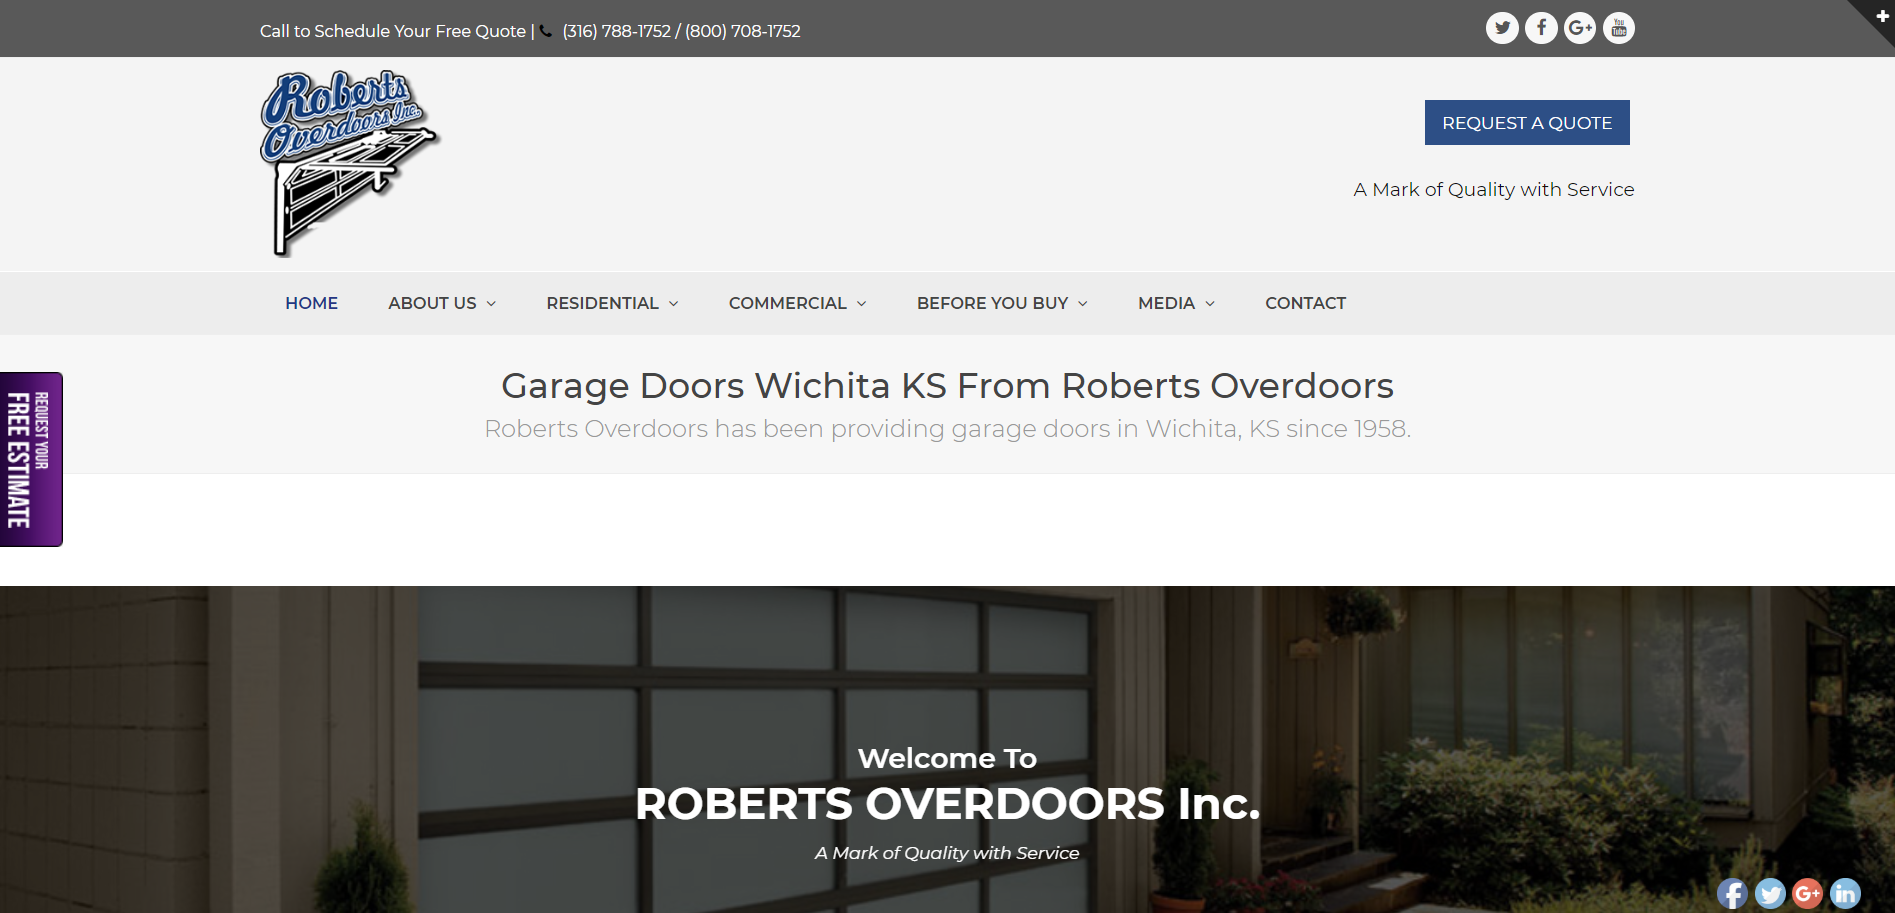 Roberts Overdoors website